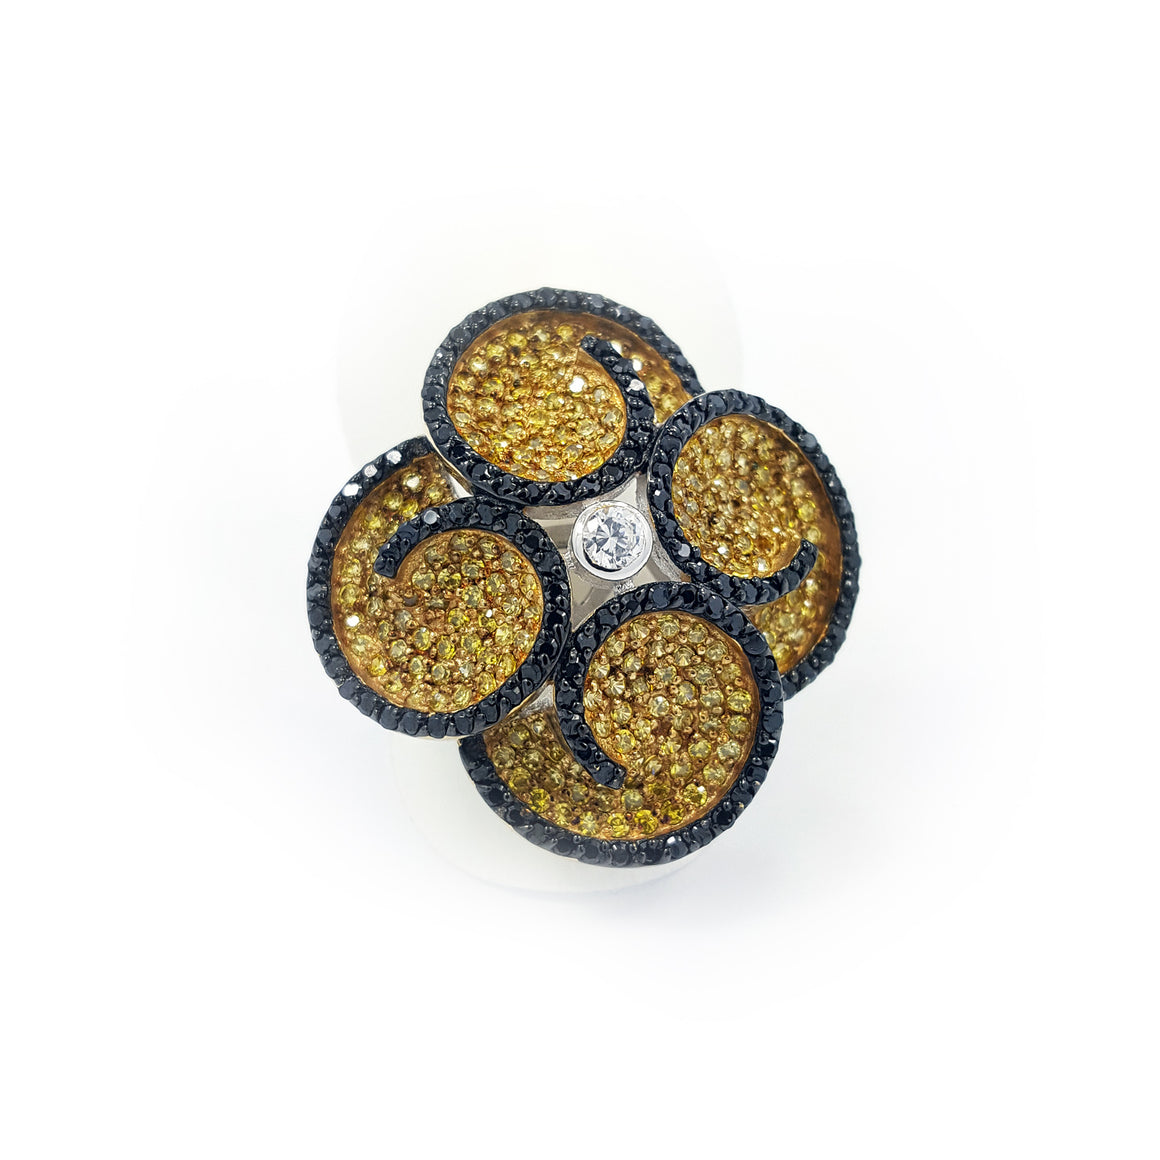 Silver ring, yellow & black